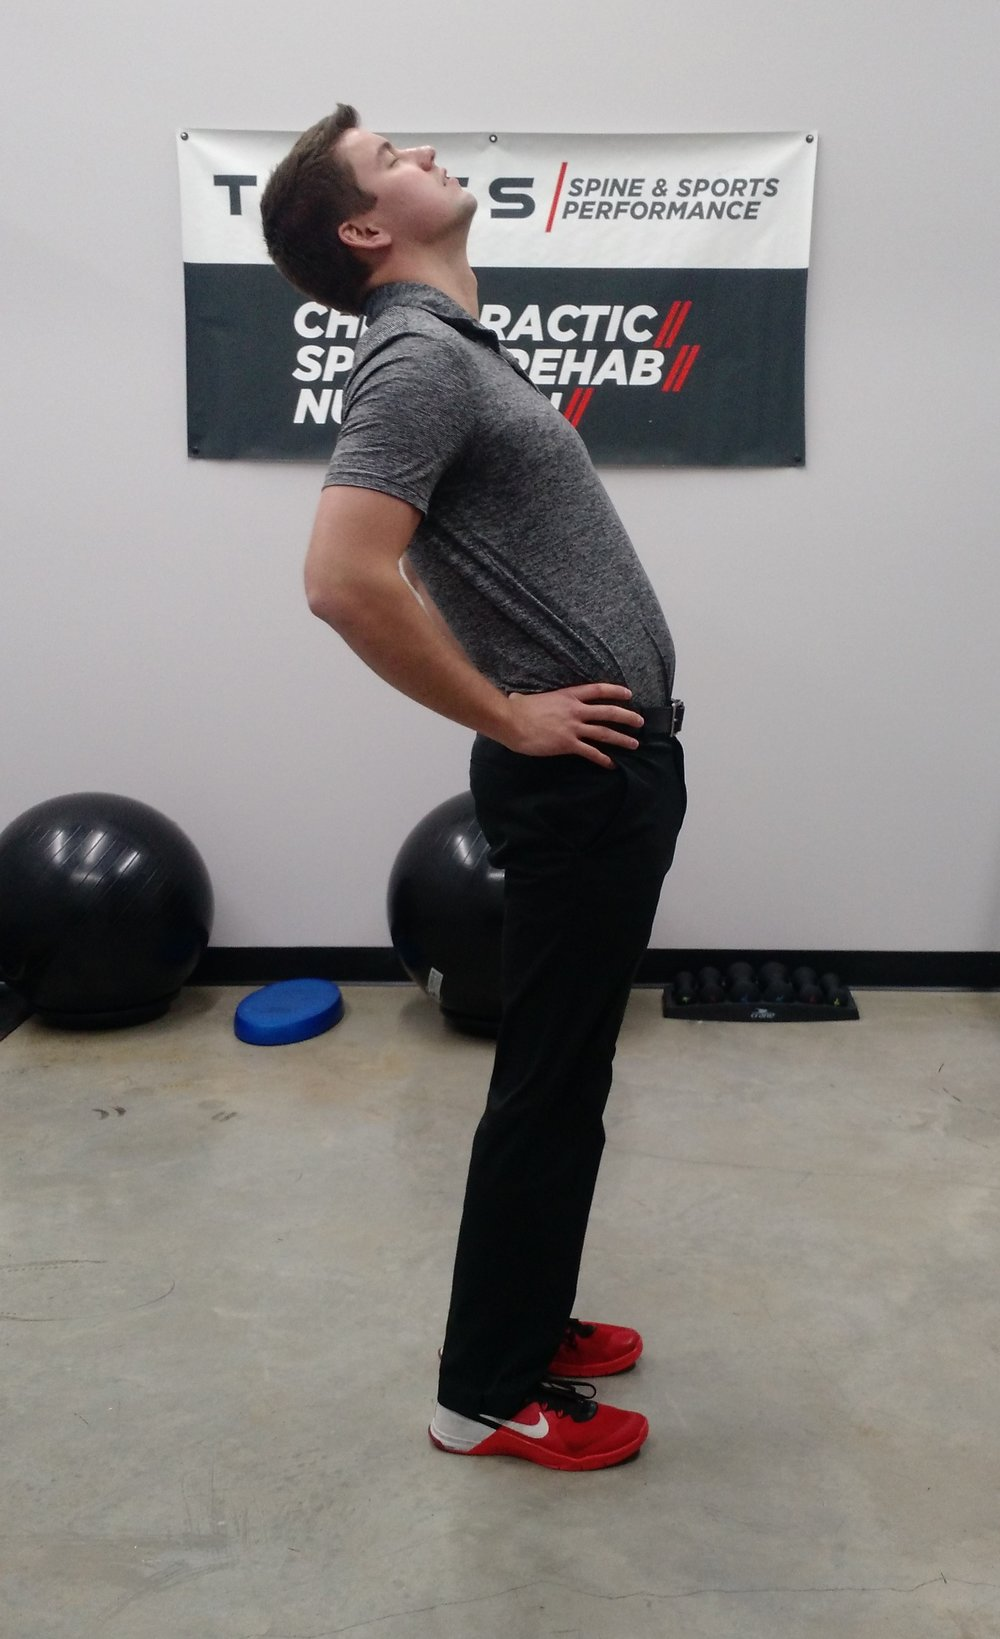 Then lean back over your hands and hold for a couple of seconds, then come back to the start position and repeat.